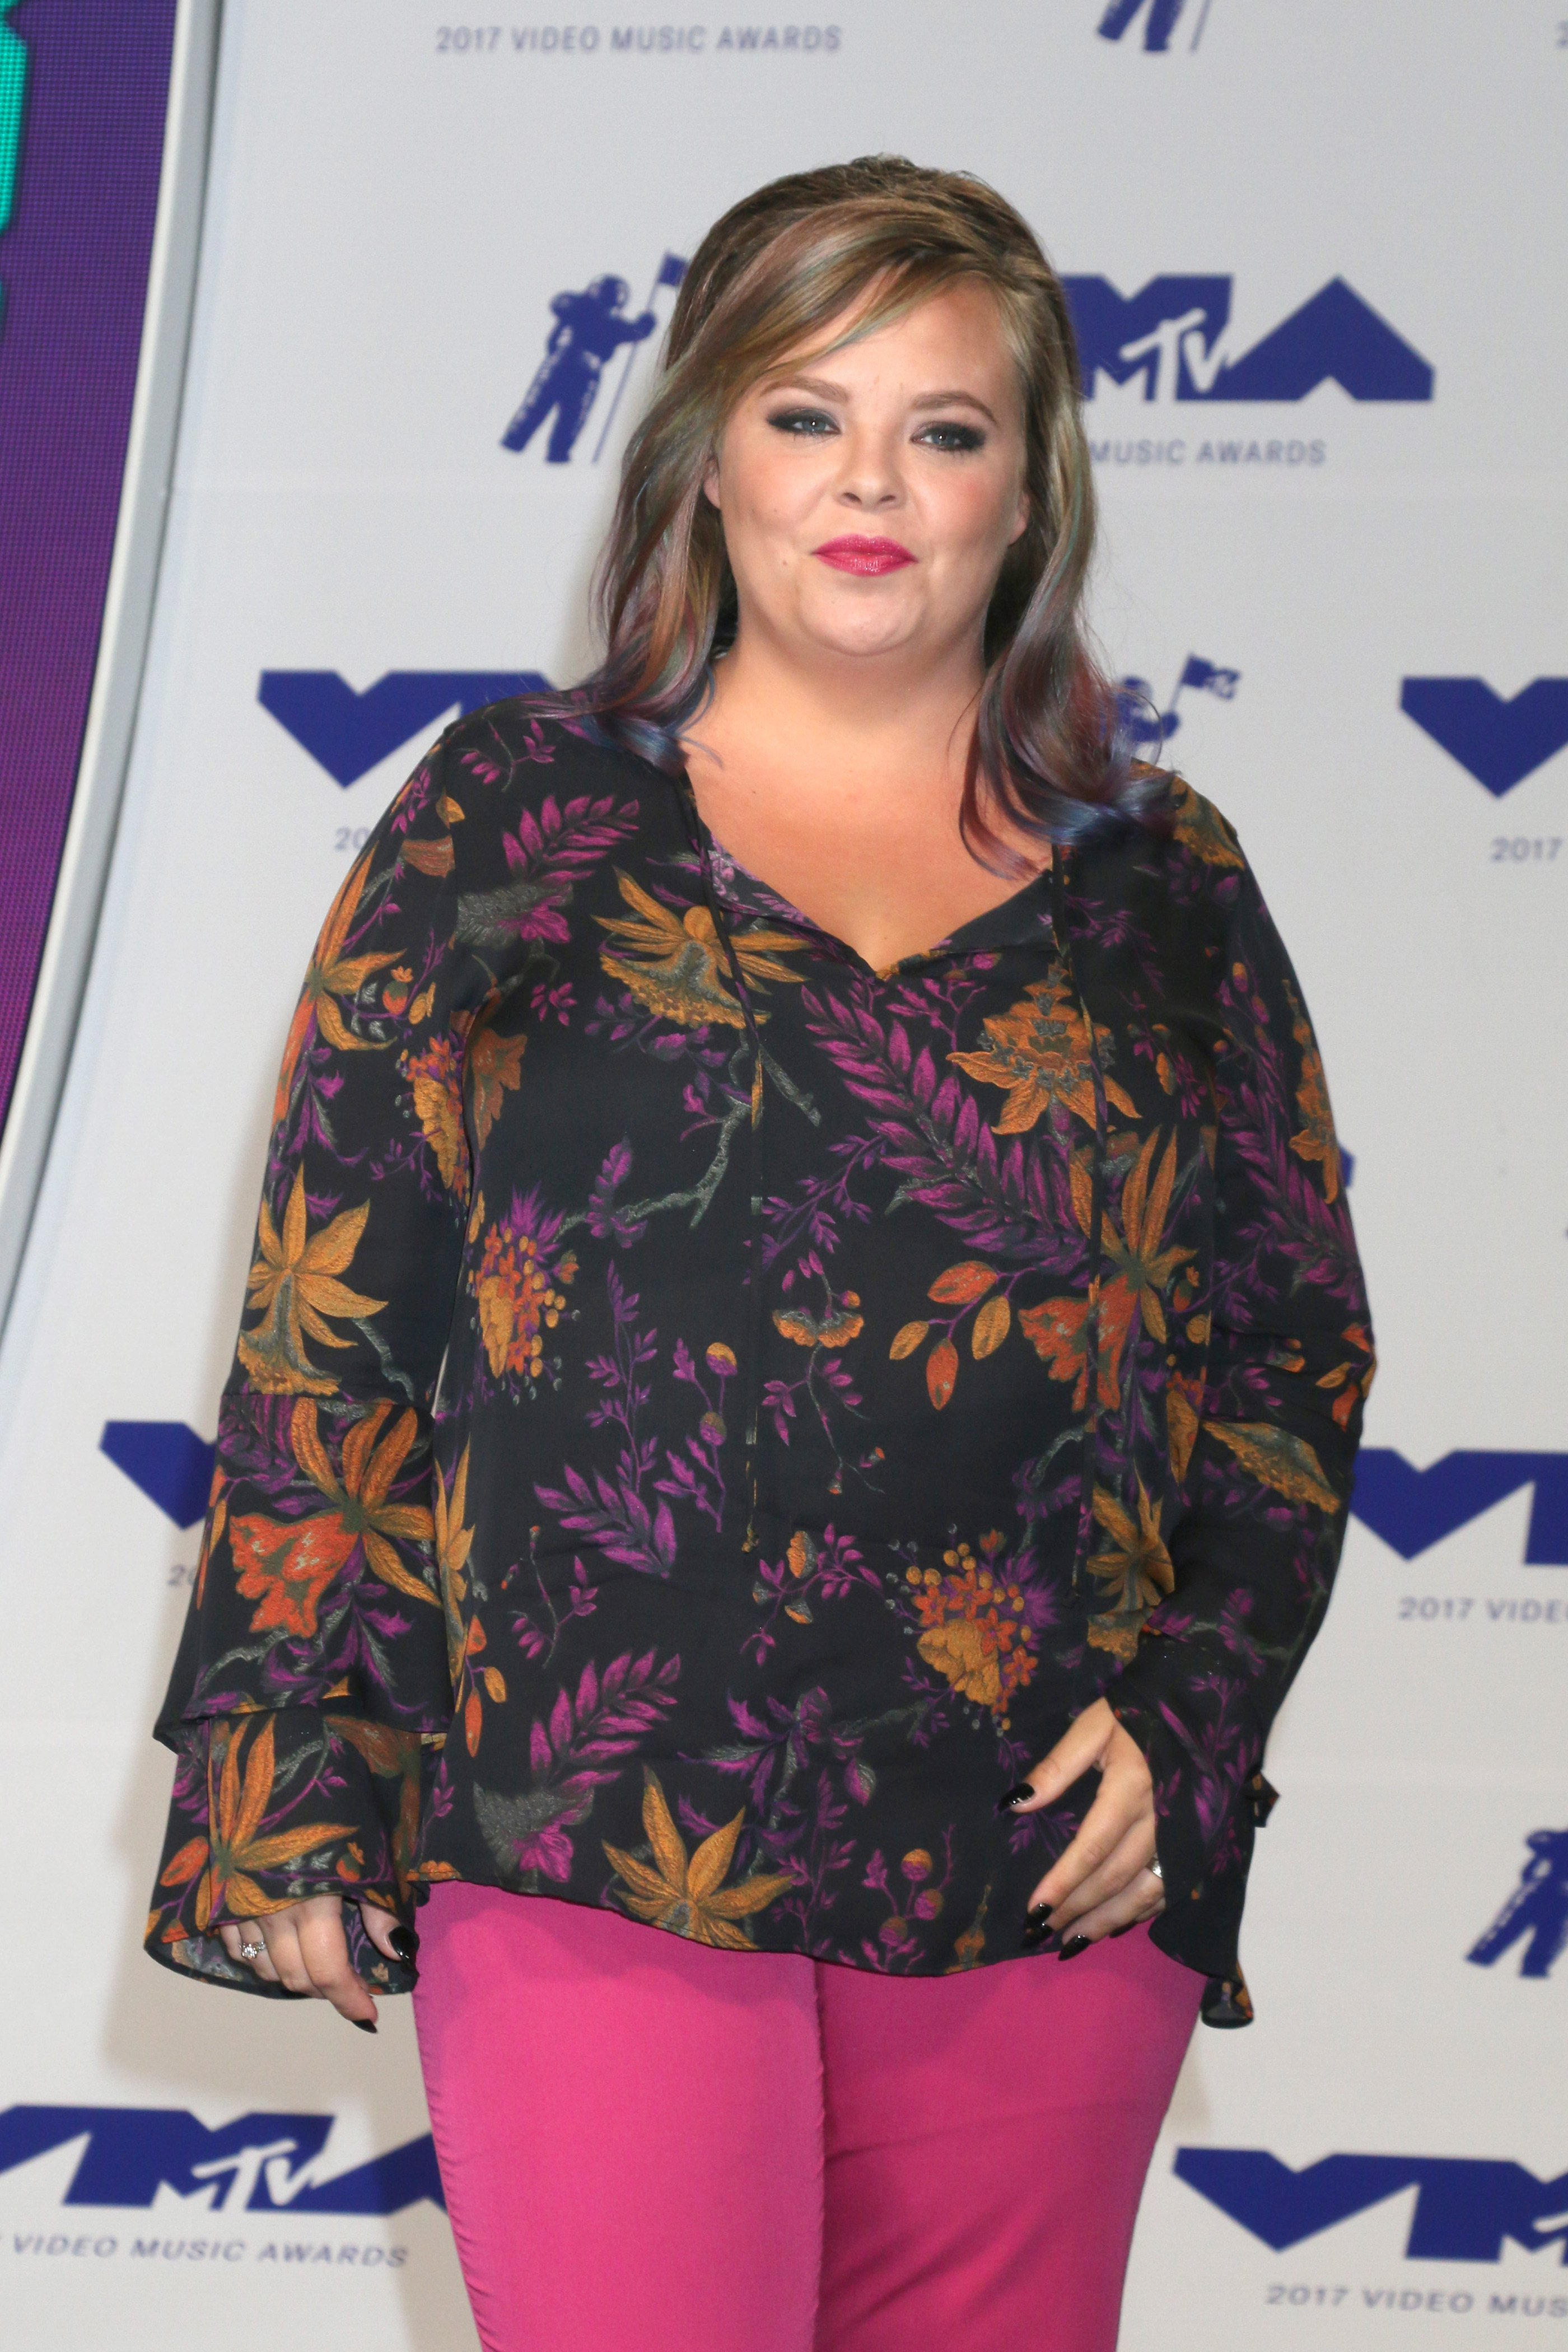 Catelynn Lowell at the MTV Video Music Awards 2017 at The Forum on August 27, 2017 in Inglewood, California | Photo: Shutterstock